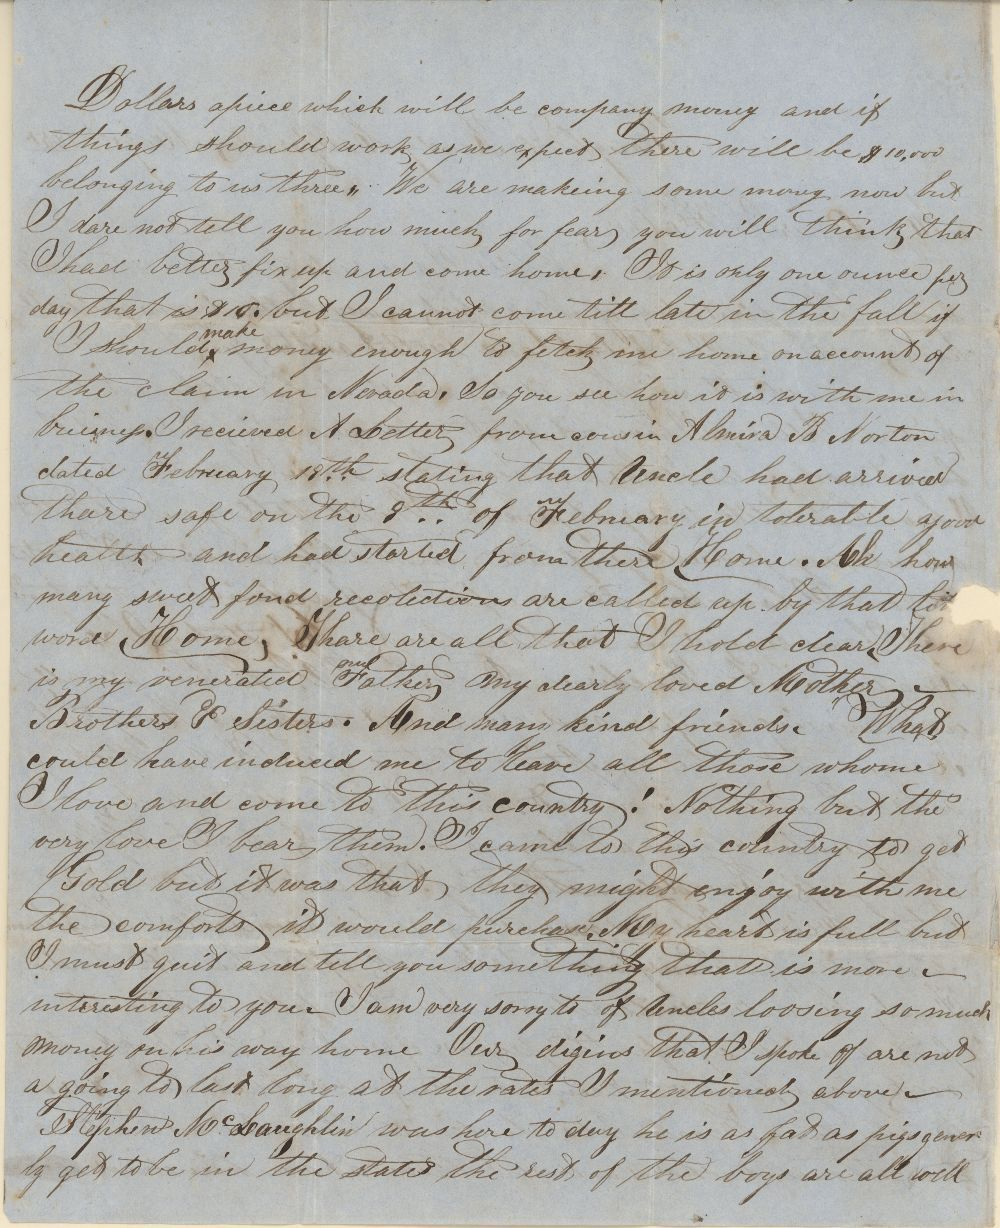 James Butler (Wild Bill) Hickok family collection - May 1, 1851, p2